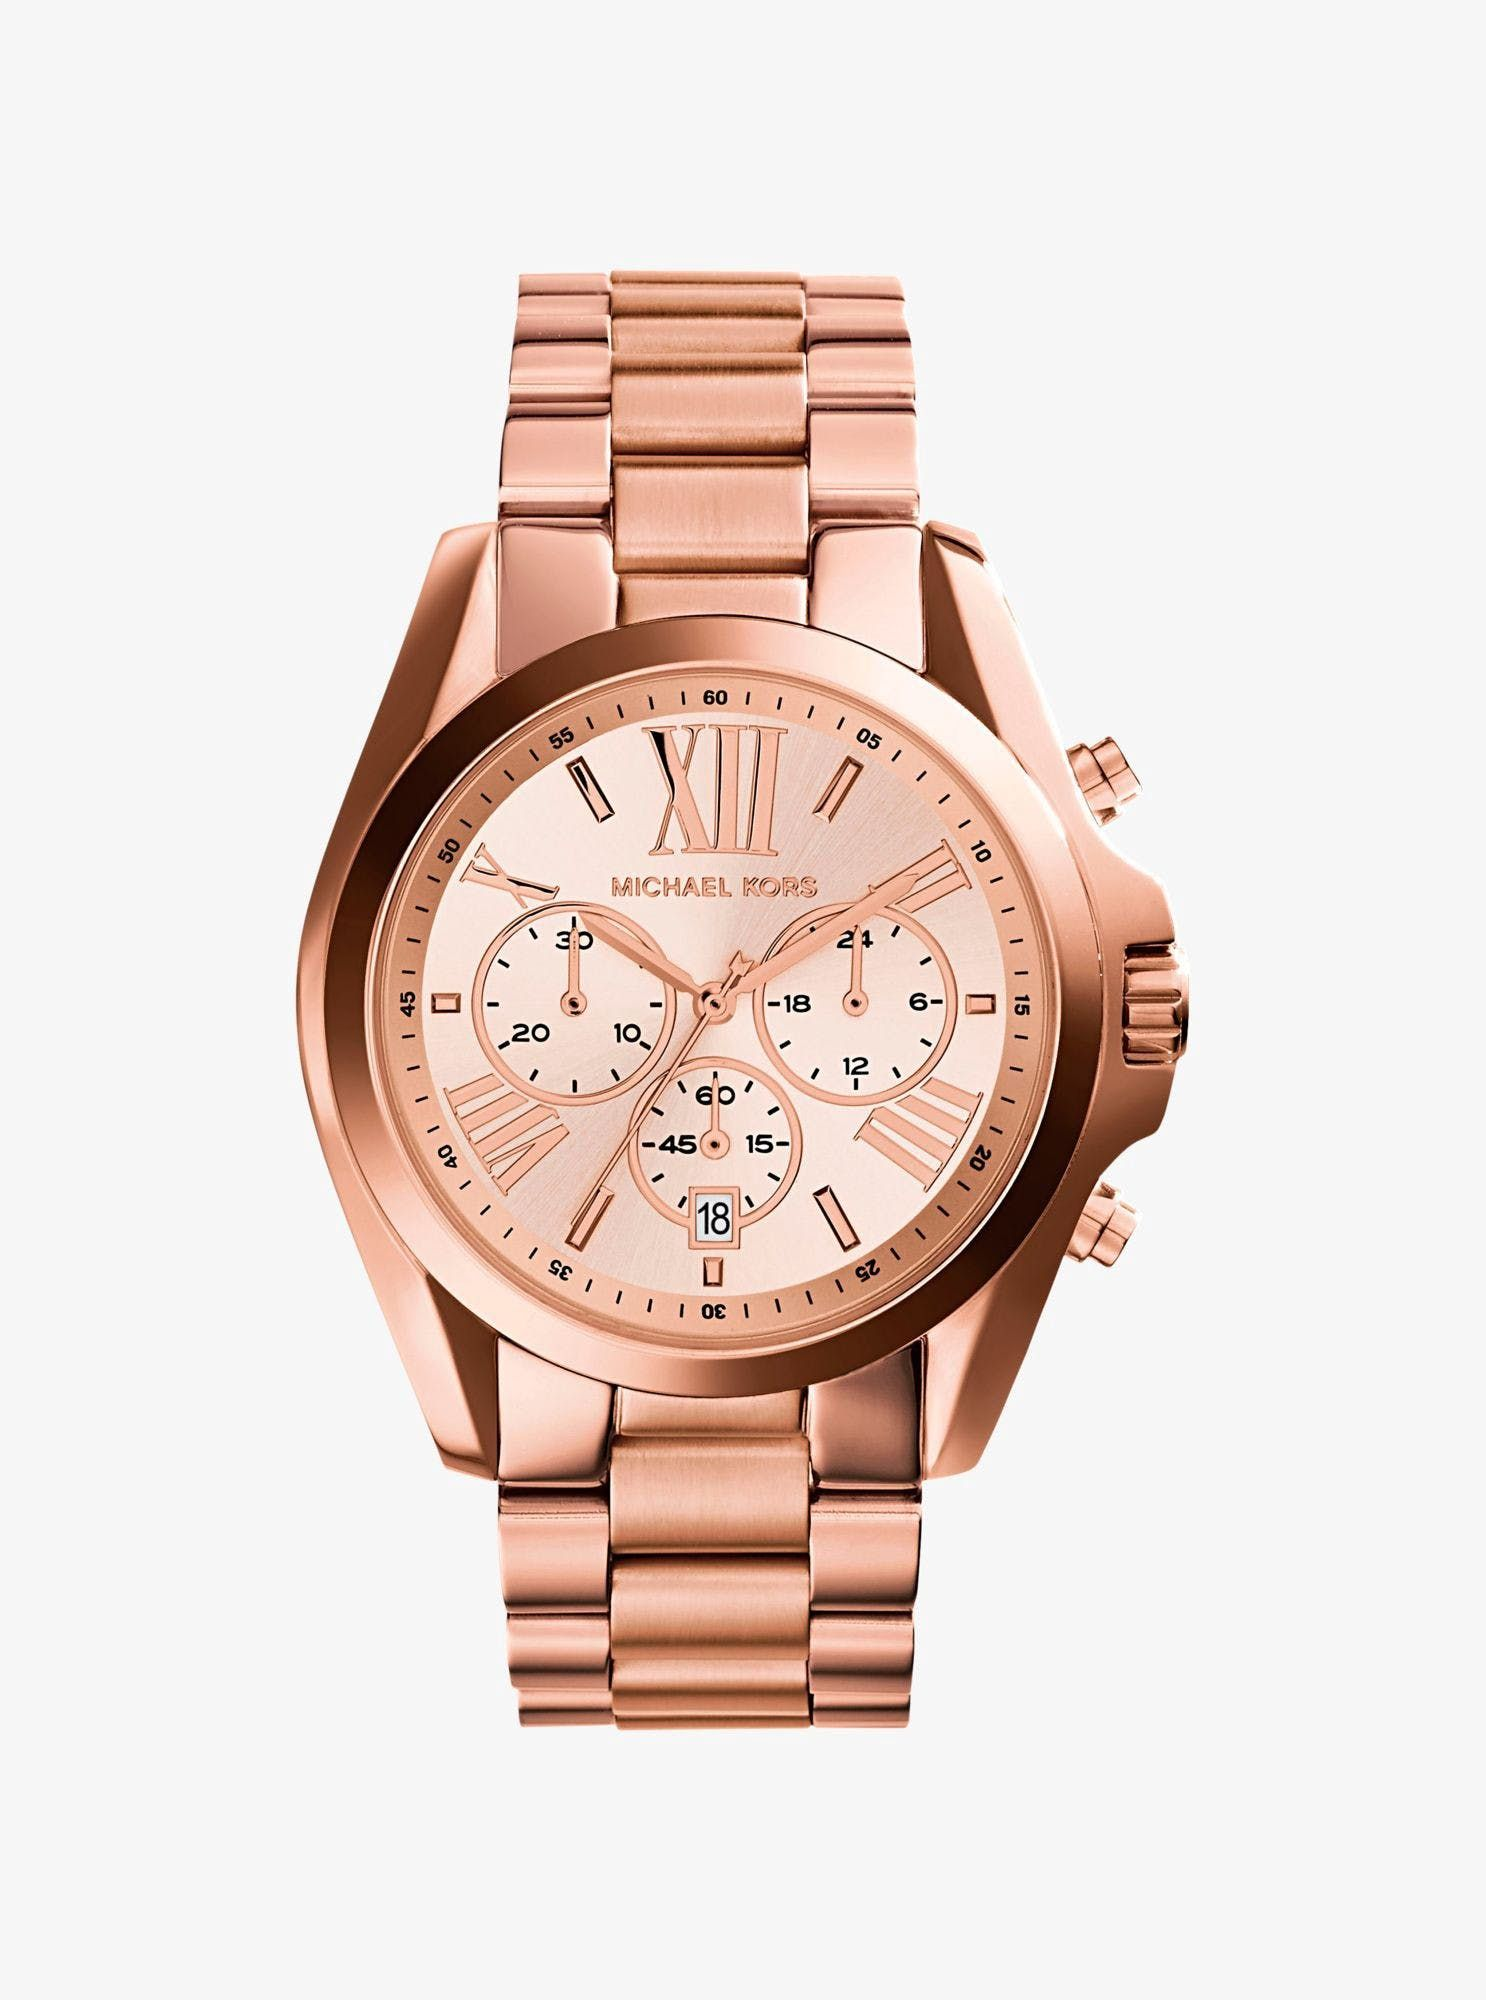 9720051d7c25d Oversize Bradshaw Gold-Tone Watch   Michael Kors MK6266   watches    Jewelry, Watches, Michael kors